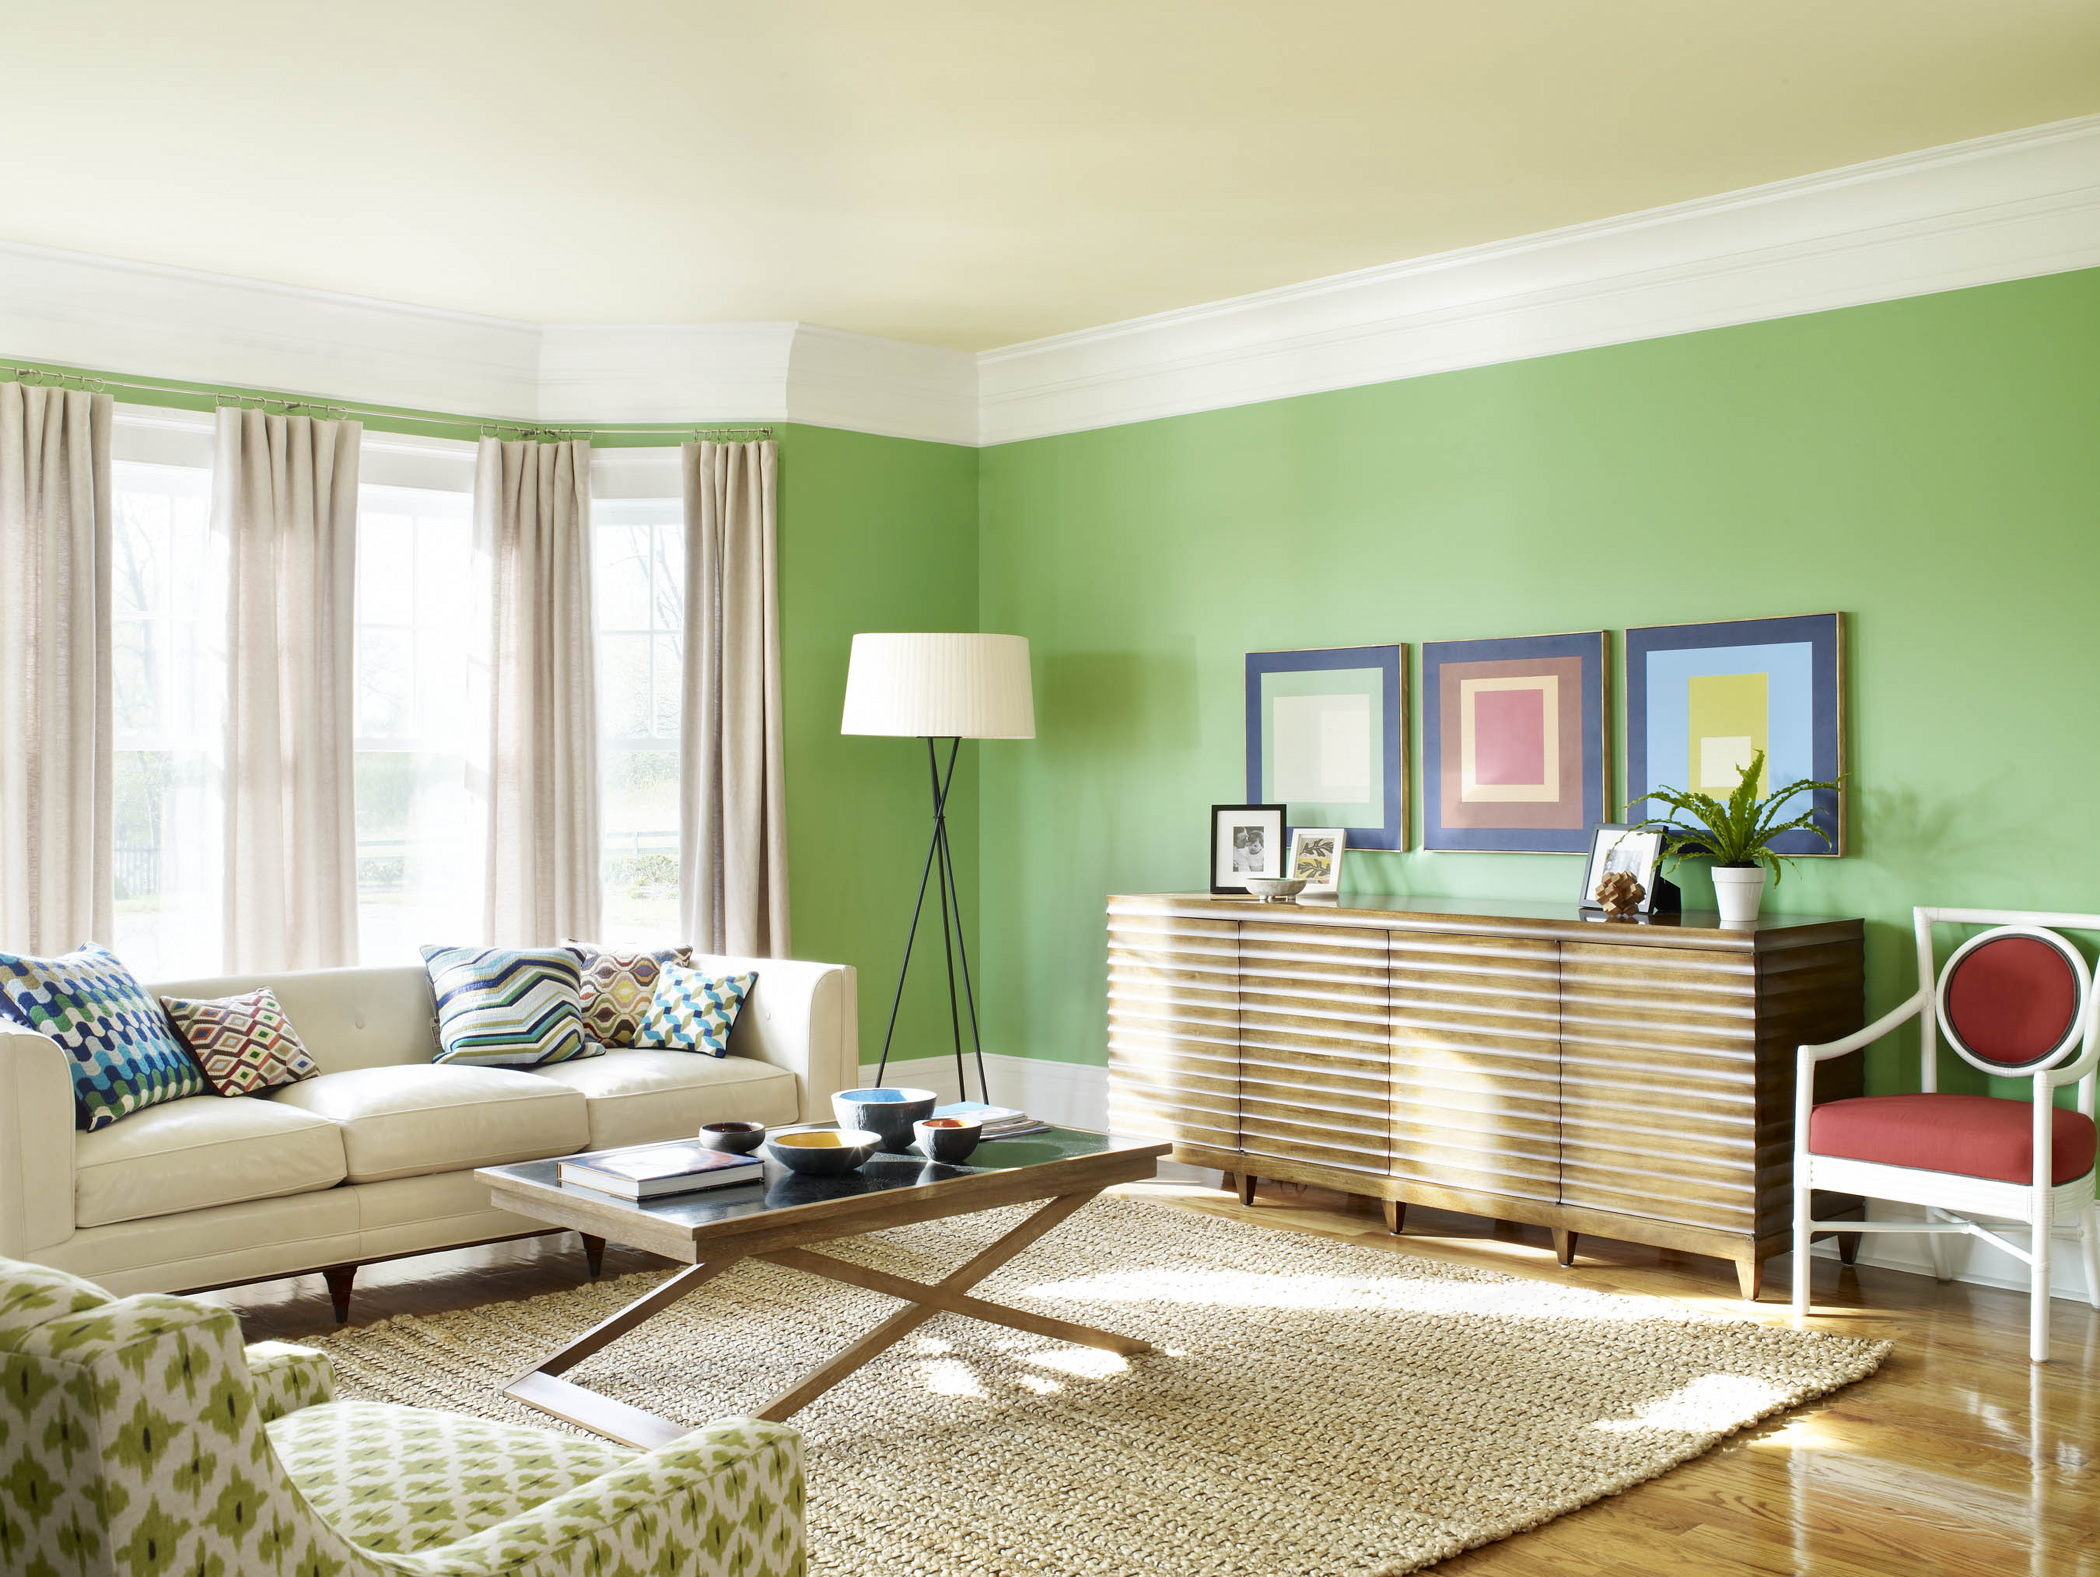 cool living room paint ideas inspiration enhancedhomesorg cool living room colors - Cool Colors For Living Room